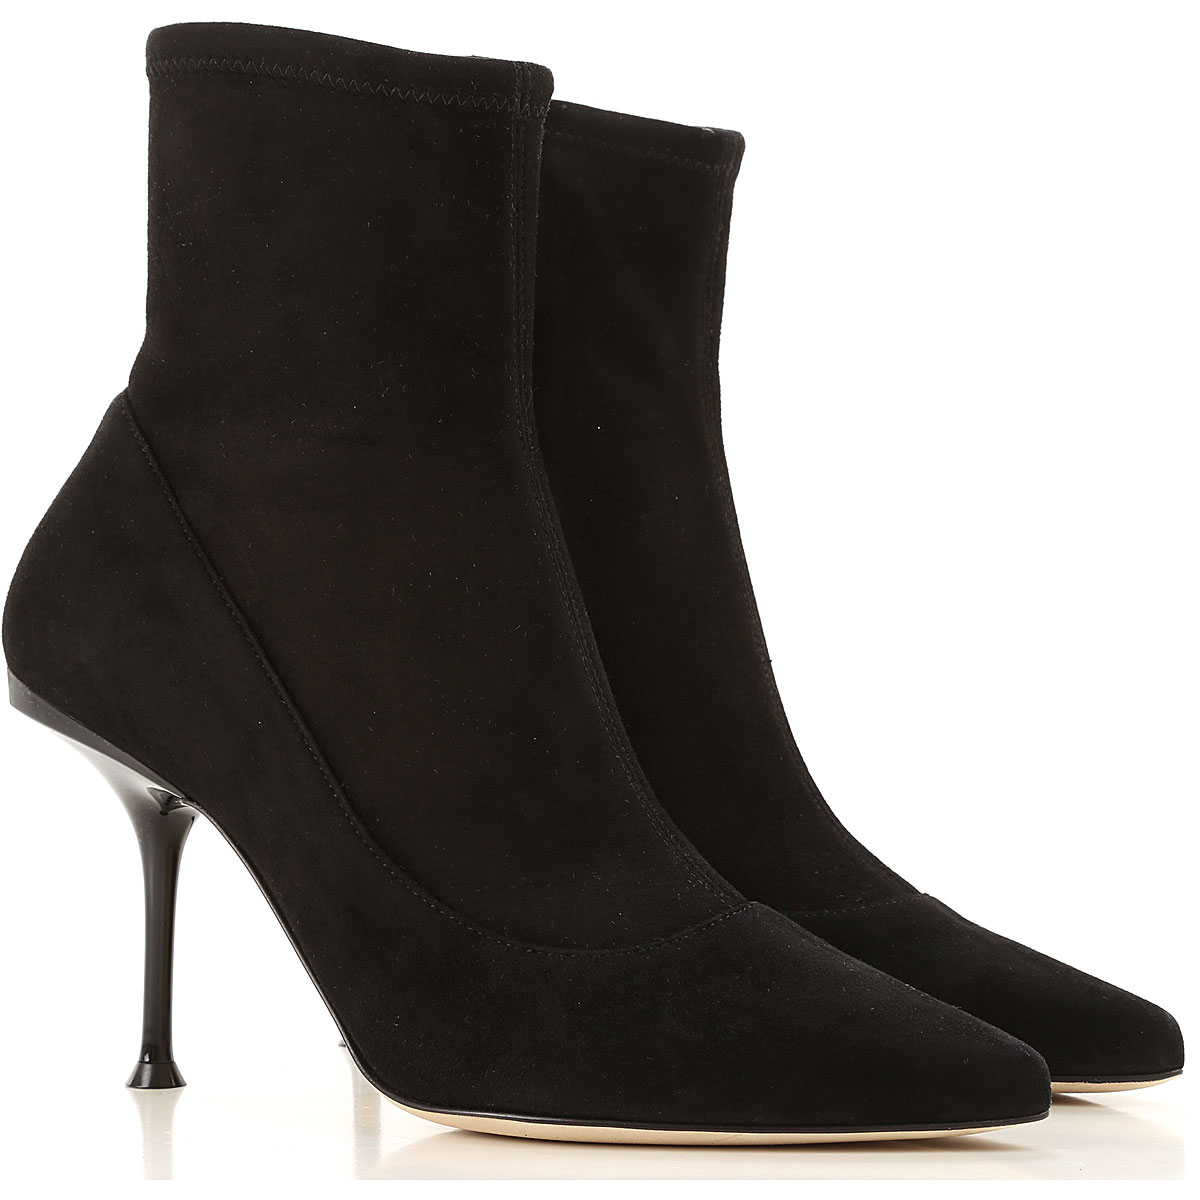 Sergio Rossi Boots for Women, Booties On Sale, Black, Suede leather, 2019, 5.5 6 7 8 8.5 9